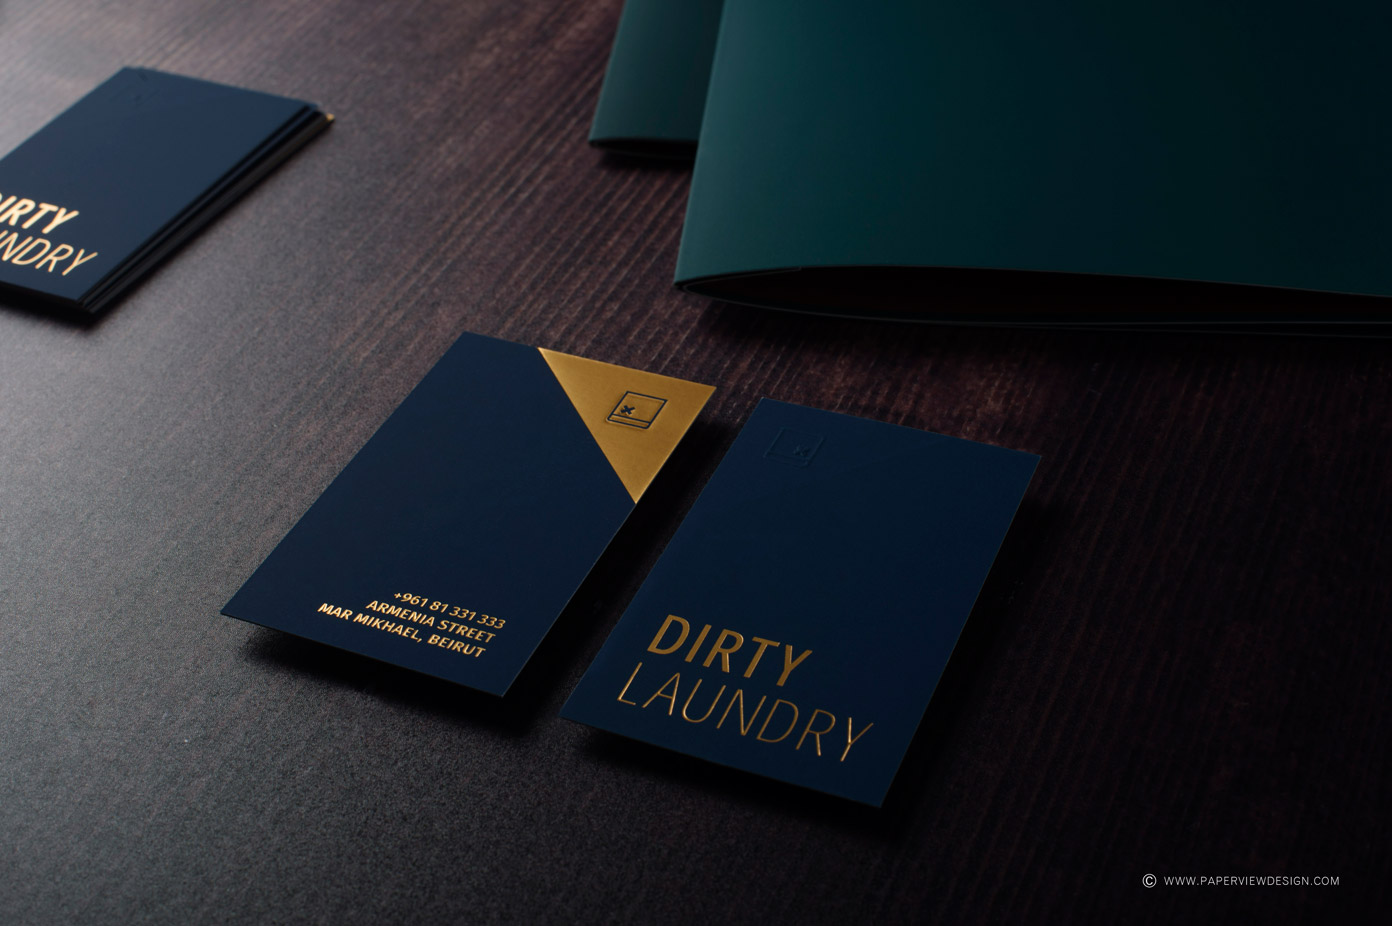 Dirty Laundry branding by PaperView.